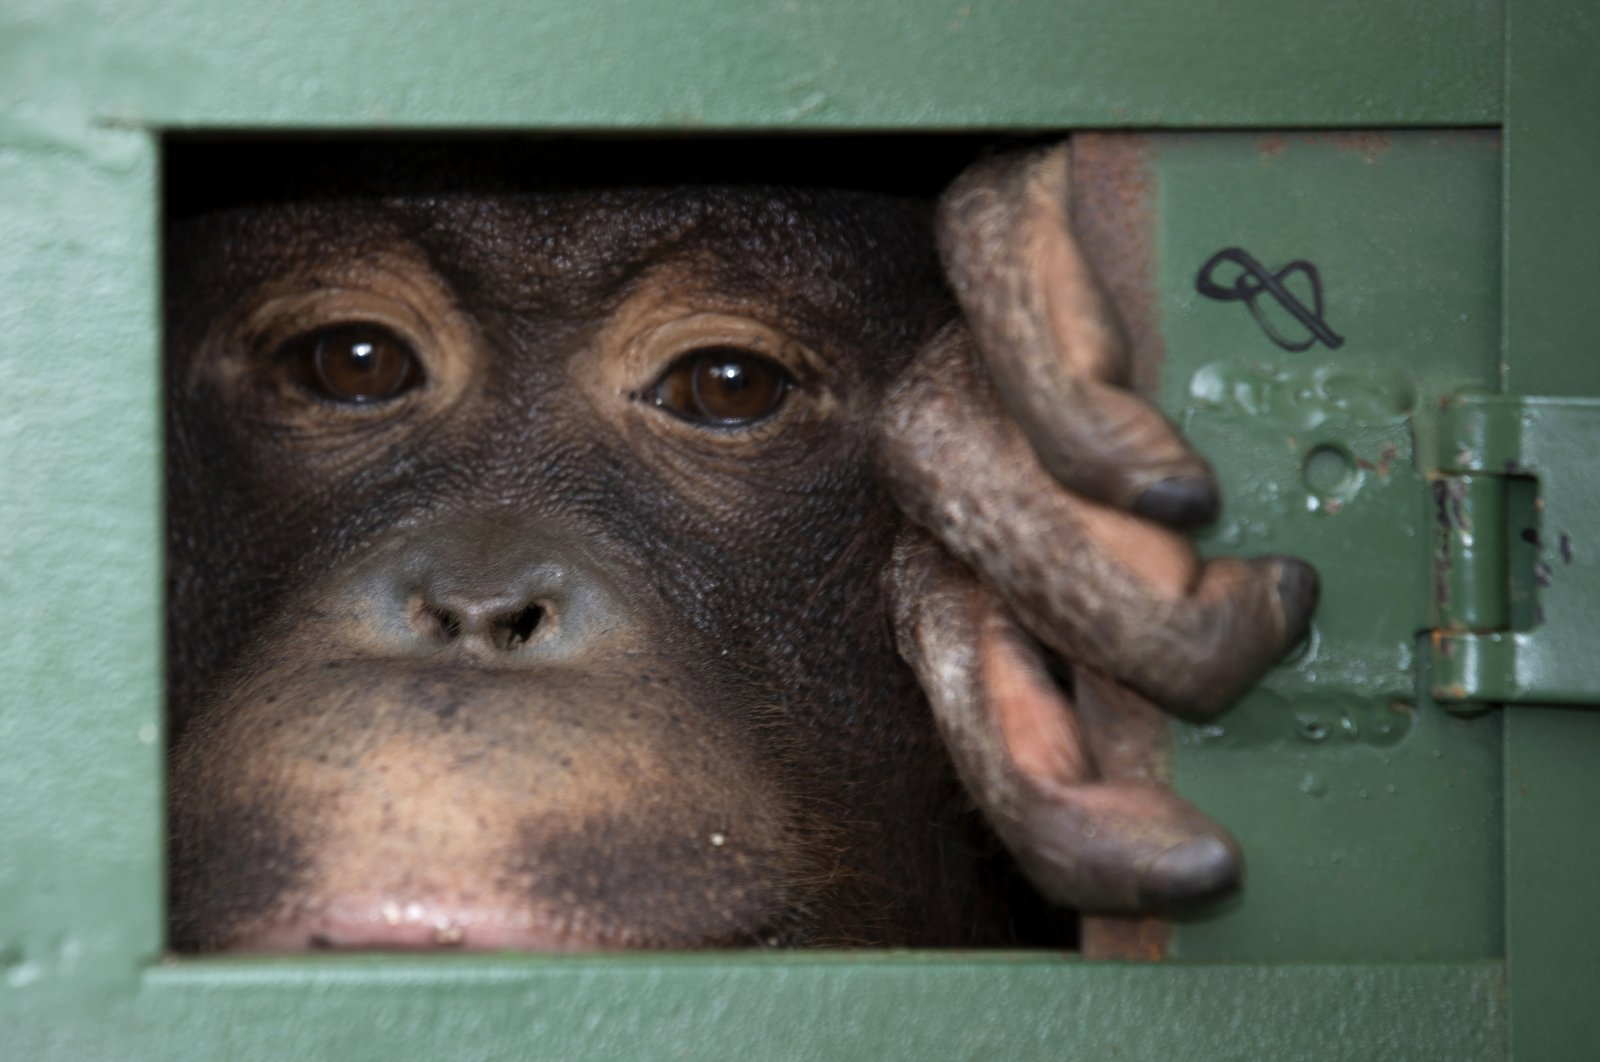 Cola, 10-year-old female orangutan, waits in a cage to be sent back to Indonesia at a Suvarnabhumi Airport in a collaborative effort to combat the illicit wildlife trade in Bangkok, Thailand, Dec. 20, 2019. (AP Photo)